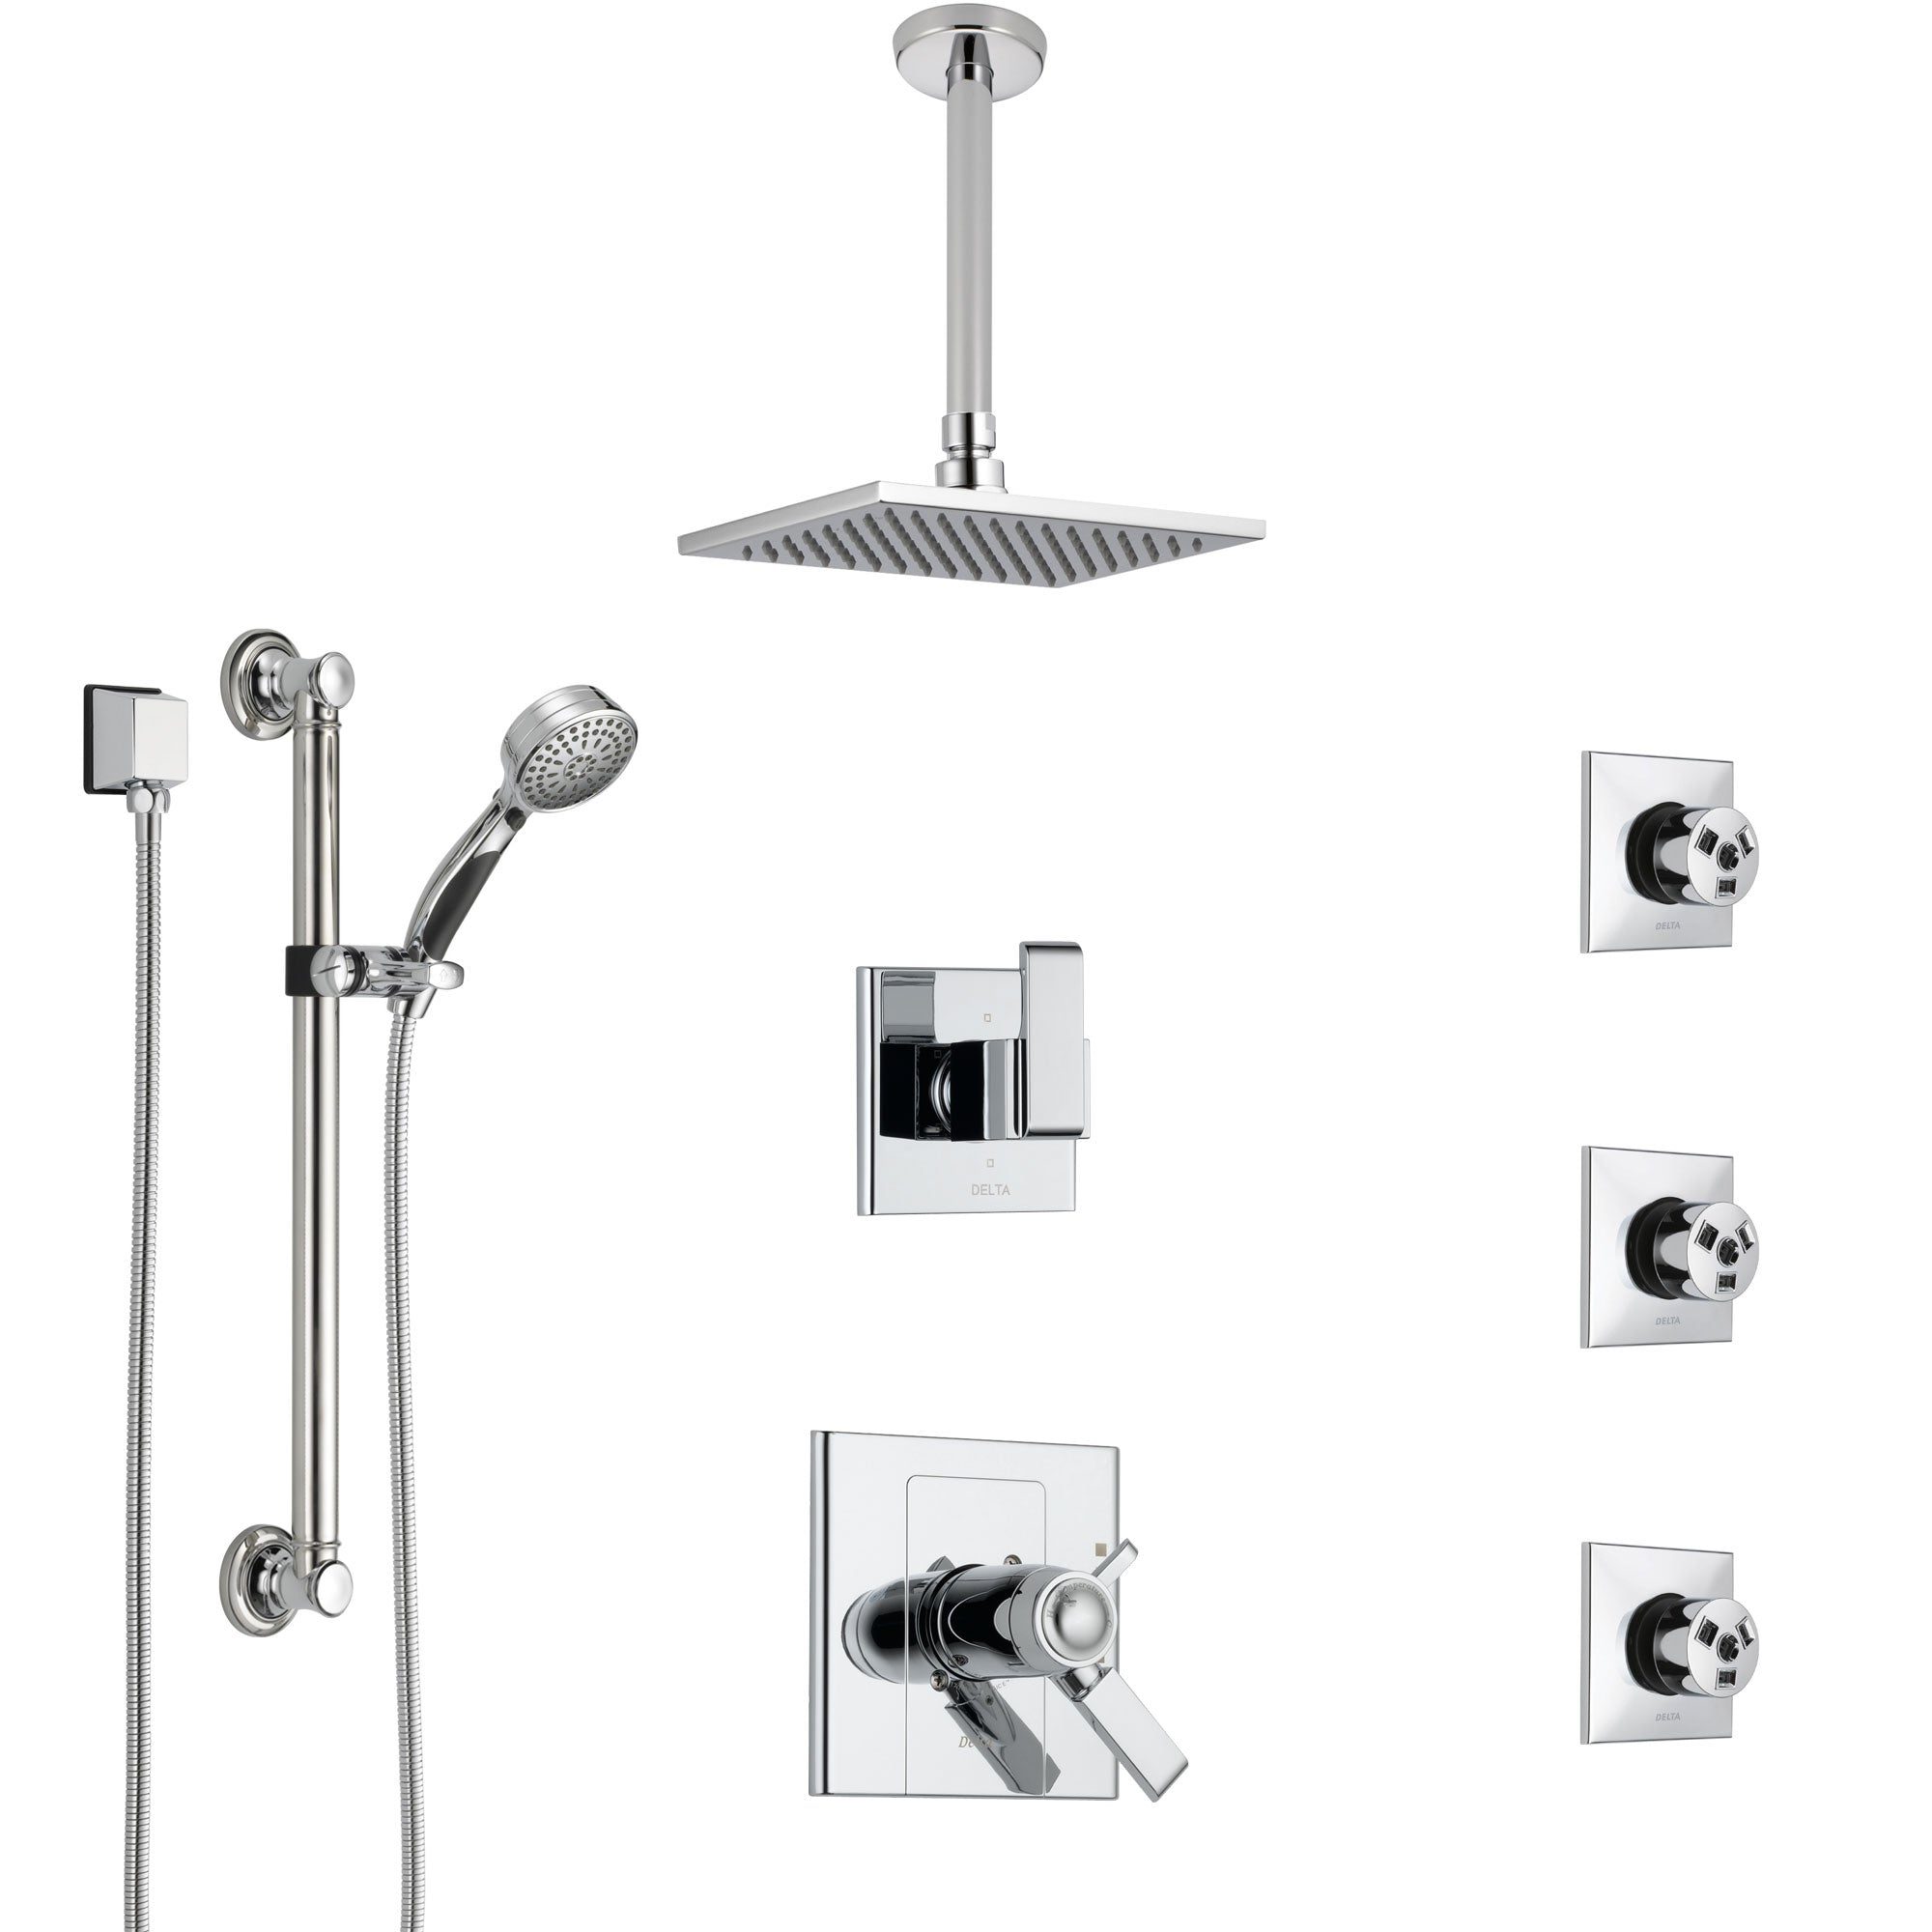 Delta Arzo Chrome Shower System with Dual Thermostatic Control, Diverter, Ceiling Mount Showerhead, 3 Body Sprays, and Grab Bar Hand Shower SS17T8622